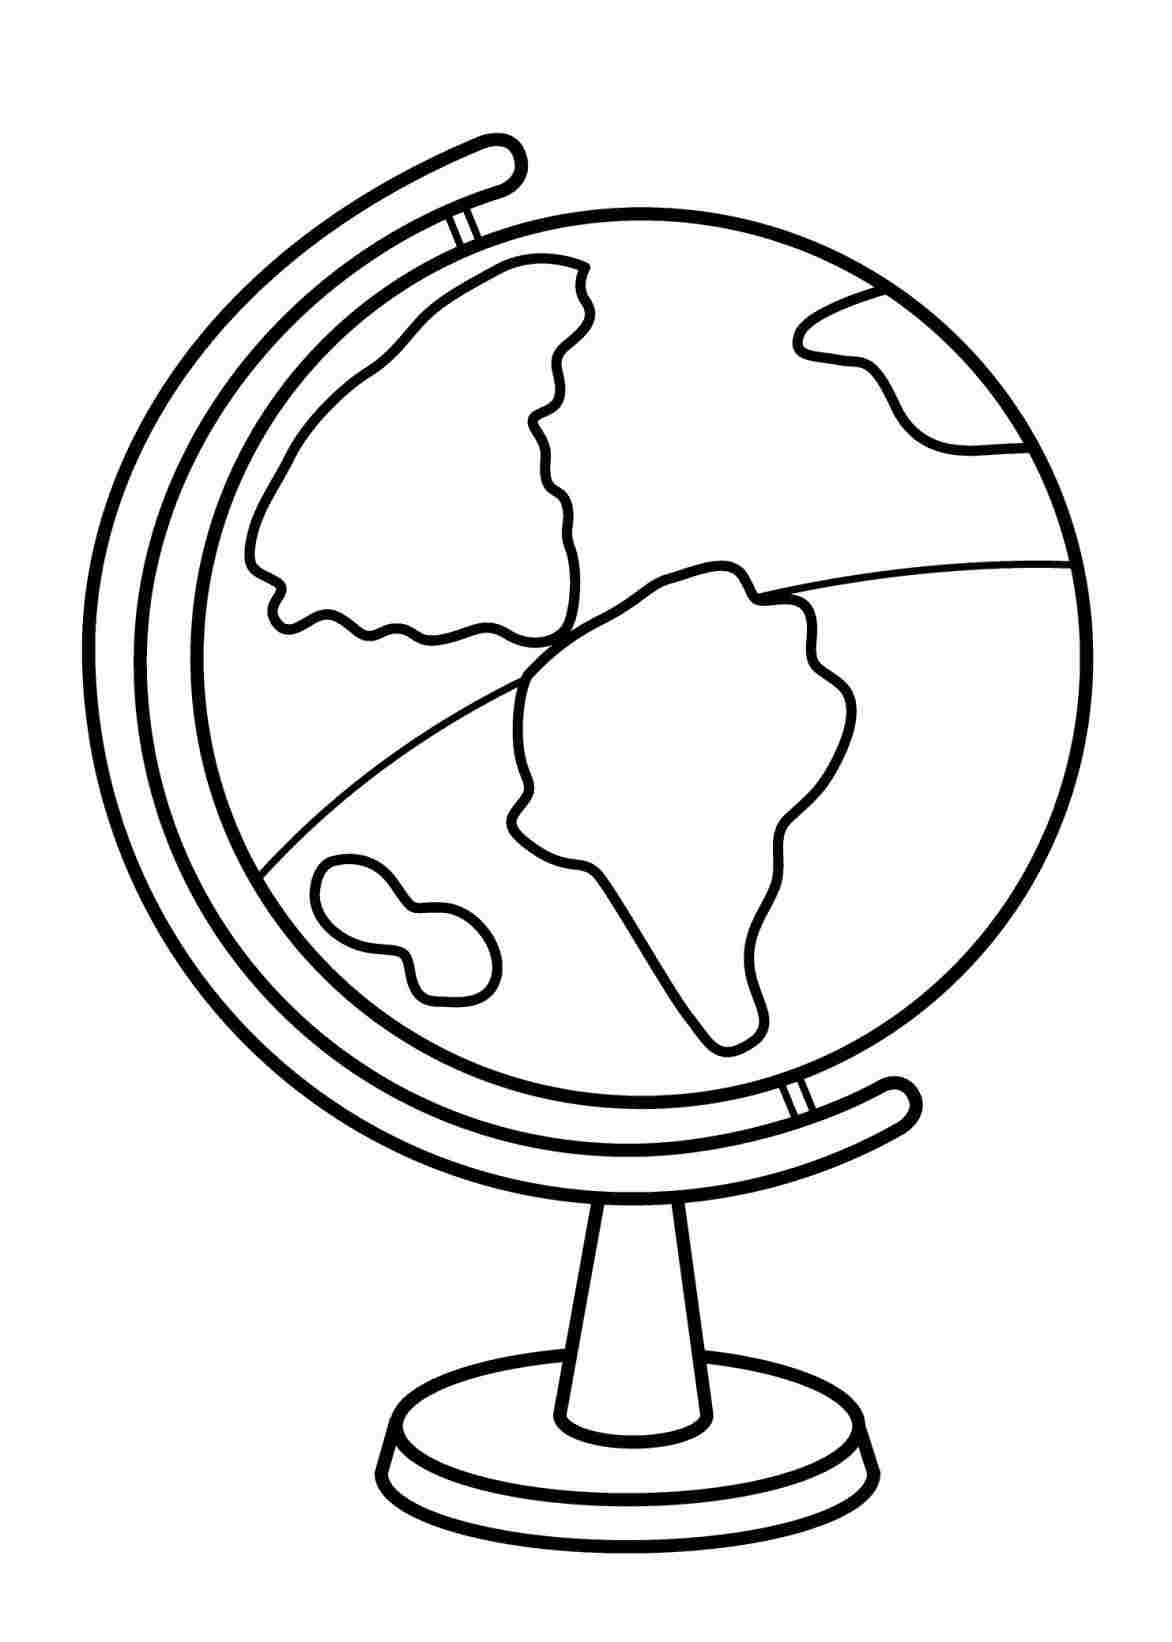 1172x1642 Huge Collection Of 'globe Drawing Simple' Download More Than